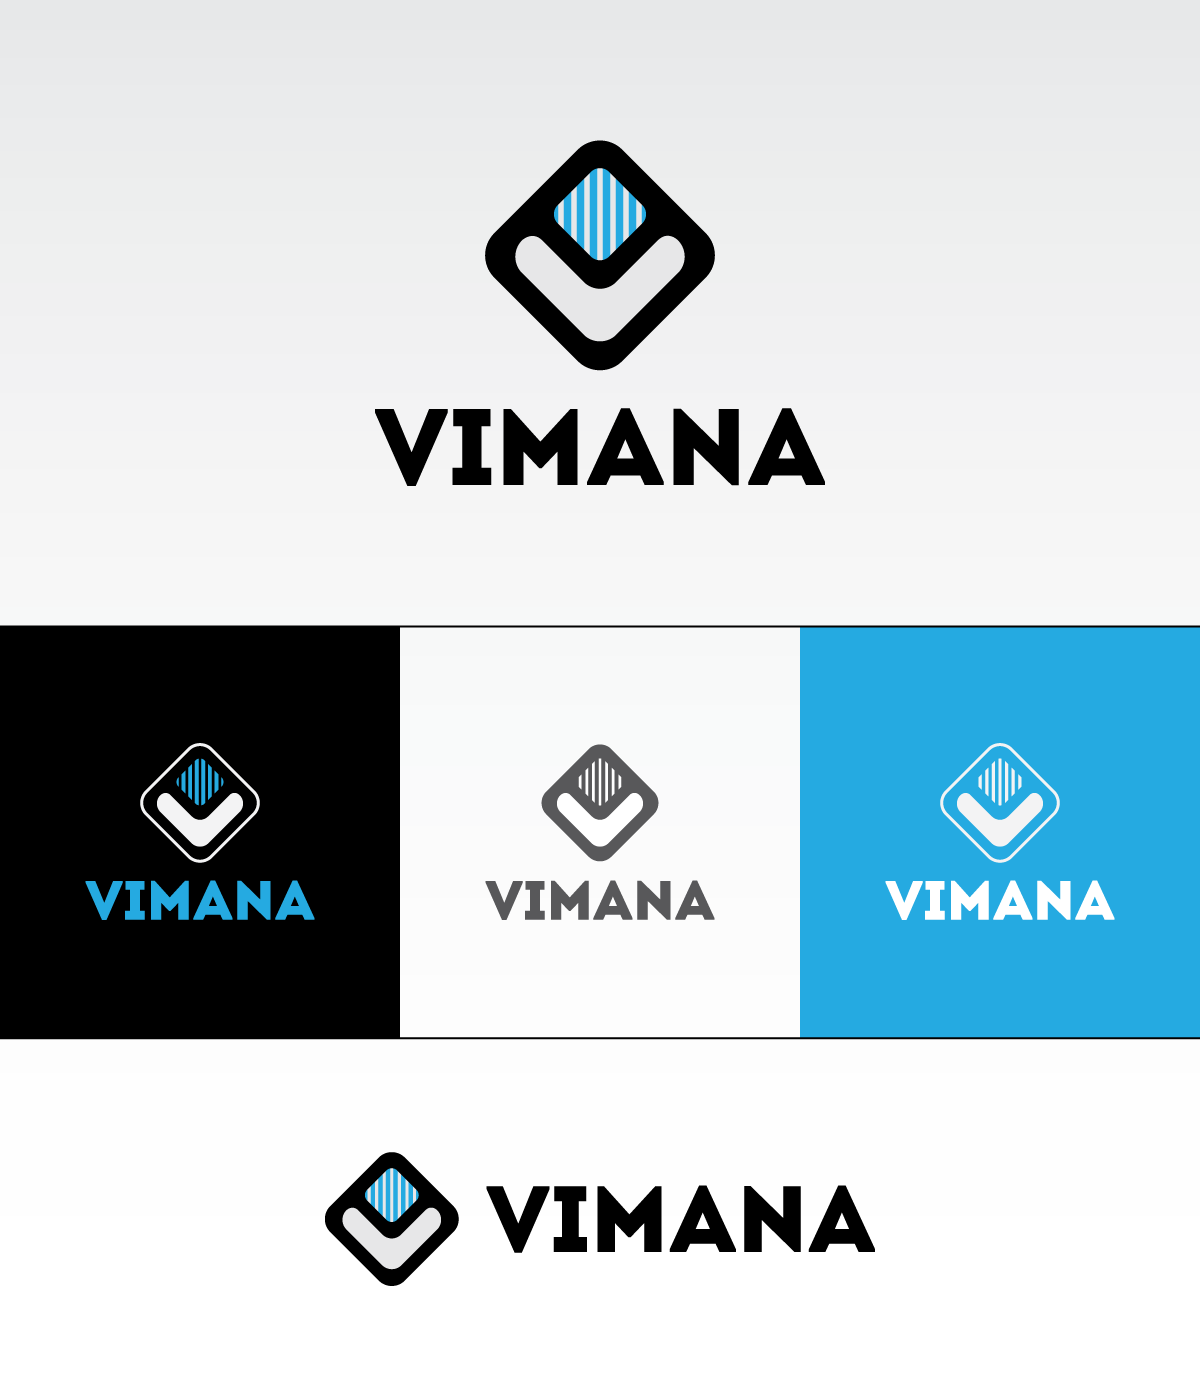 TakeRoot - Vimana Corporation